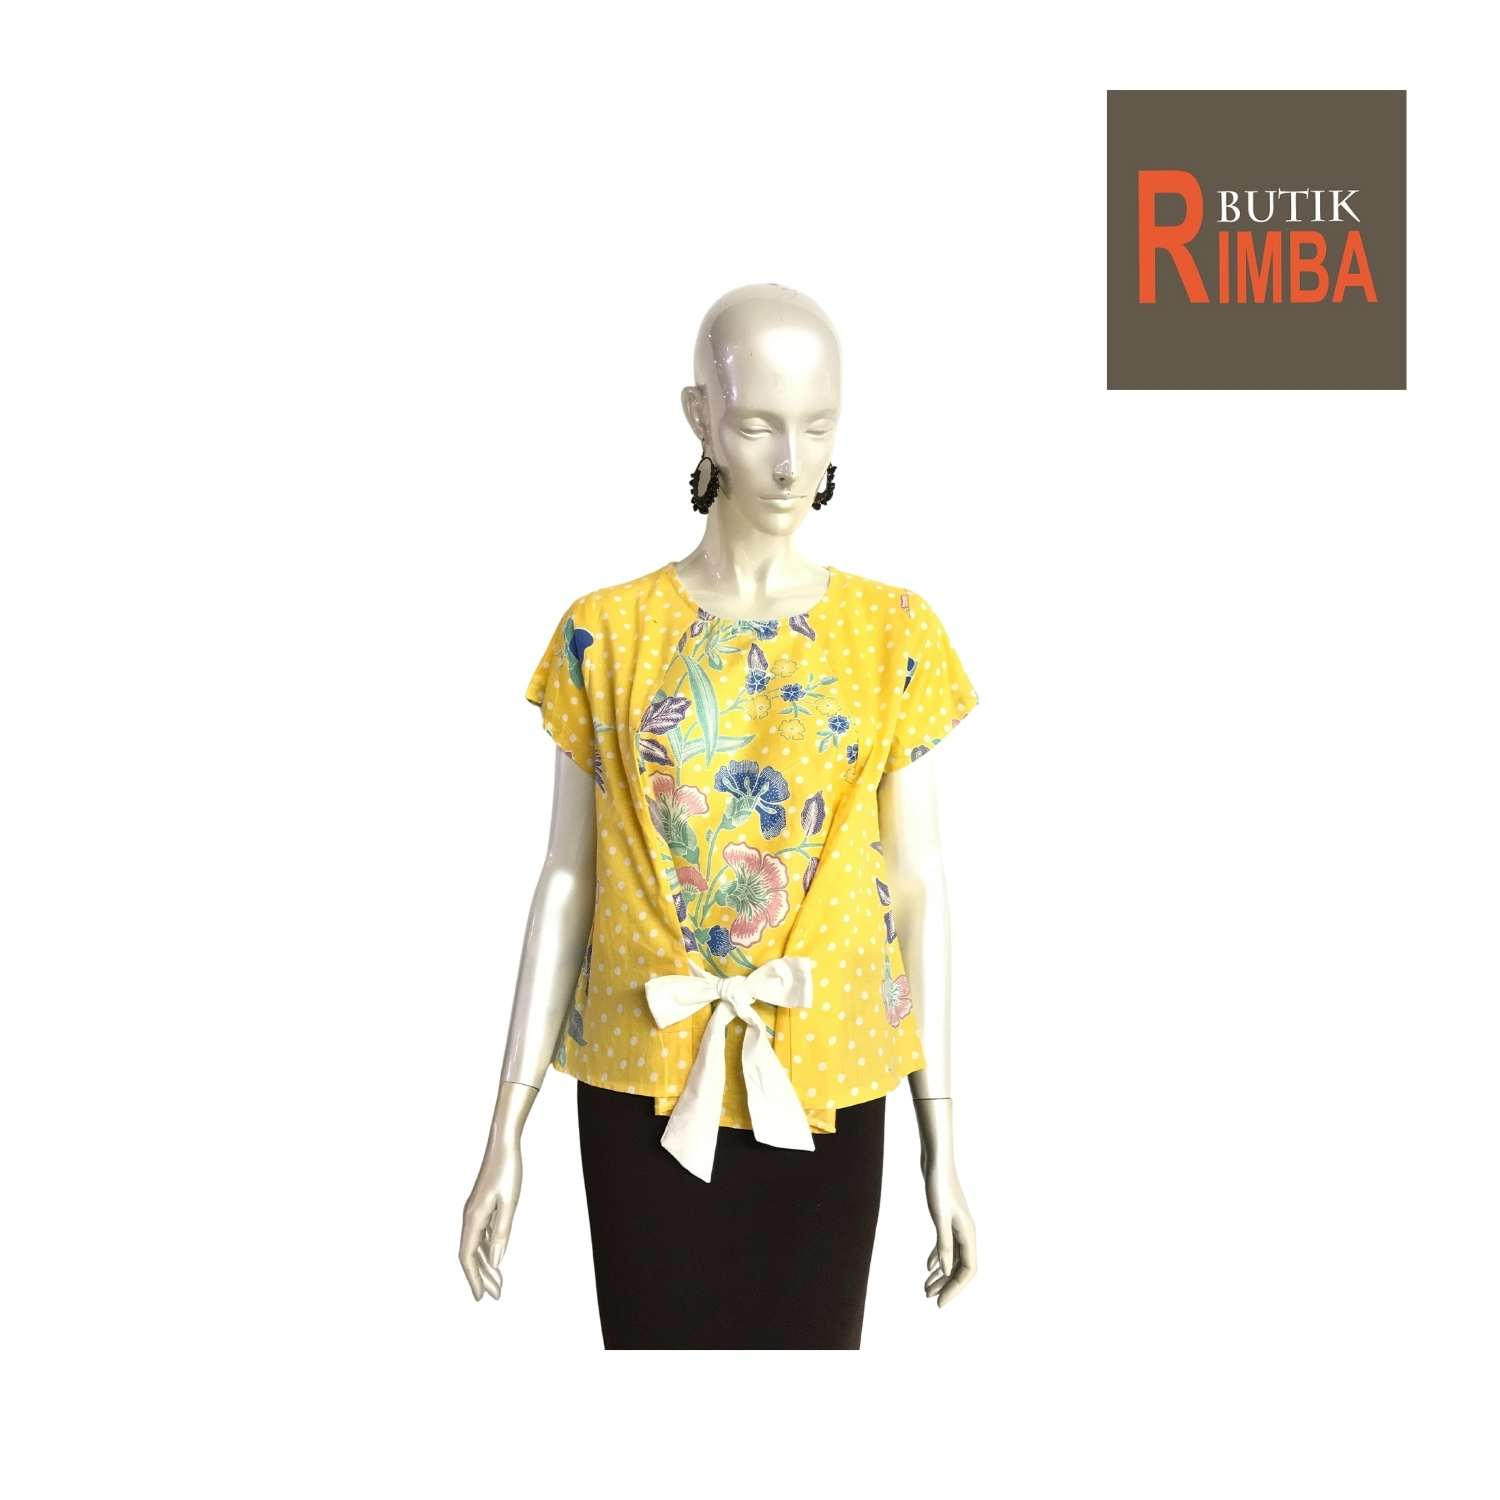 TRENDY SHORT SLEEVE BATIK TOP WITH VIBRANT COLORS FOR MODERN AND STYLISH WOMEN